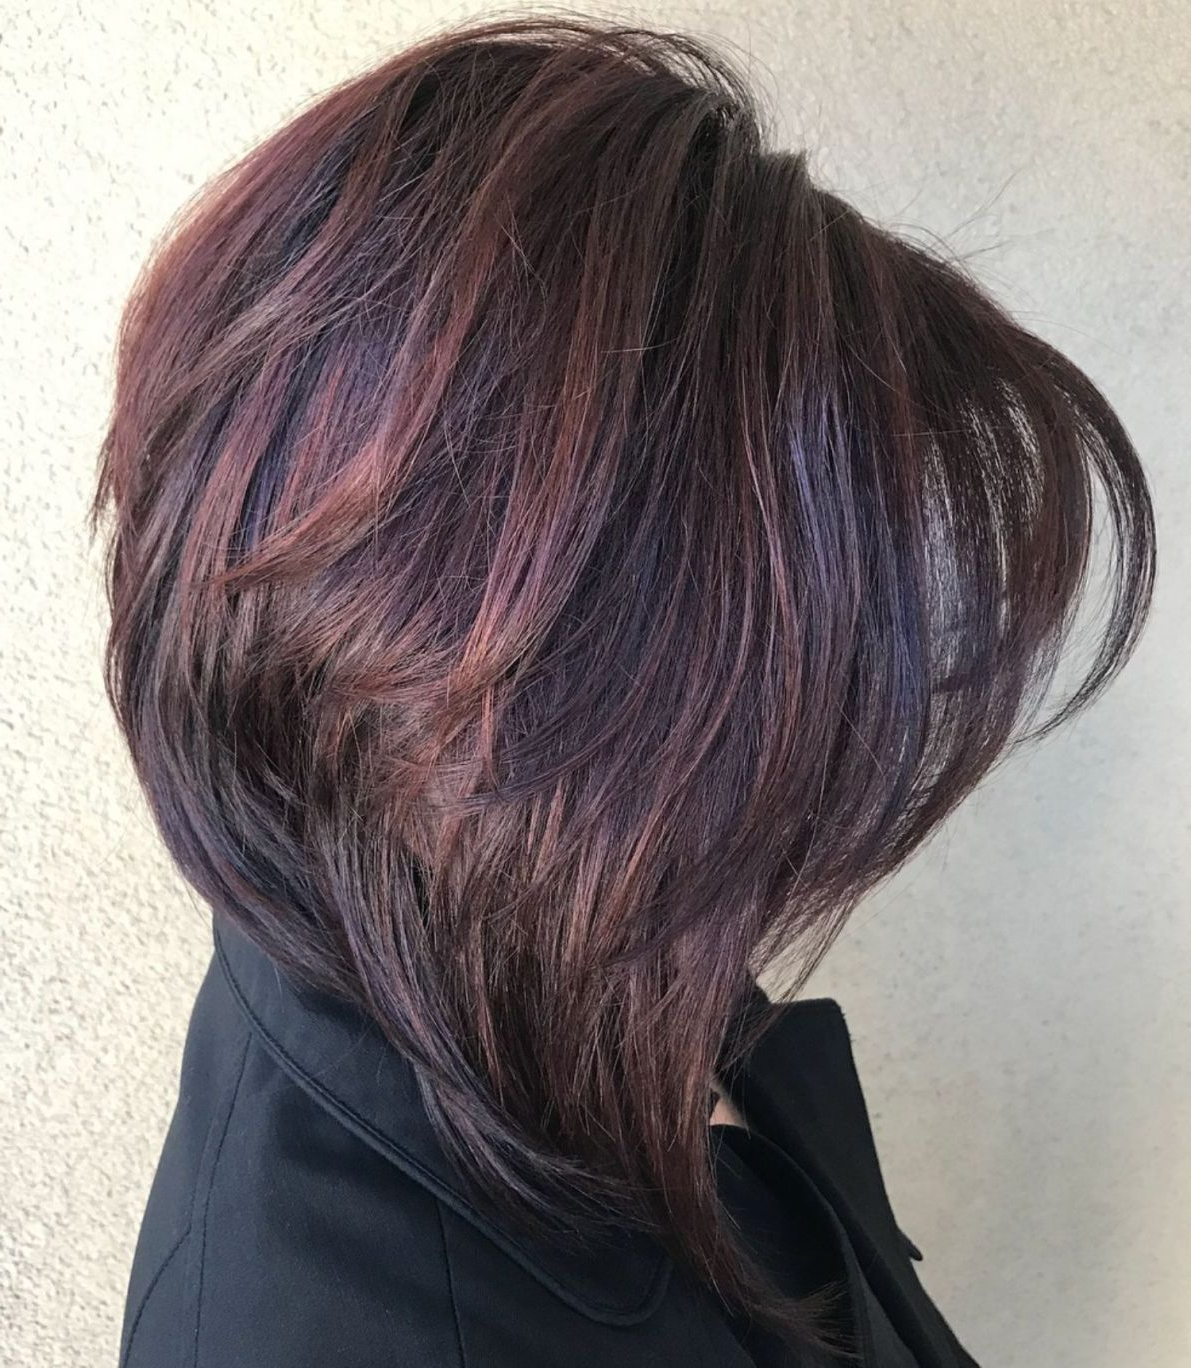 List Of Pinterest Loang Bob Haircut With Layers Thick Hair Brunettes Pertaining To Layered Bob Hairstyles For Thick Hair (View 15 of 20)